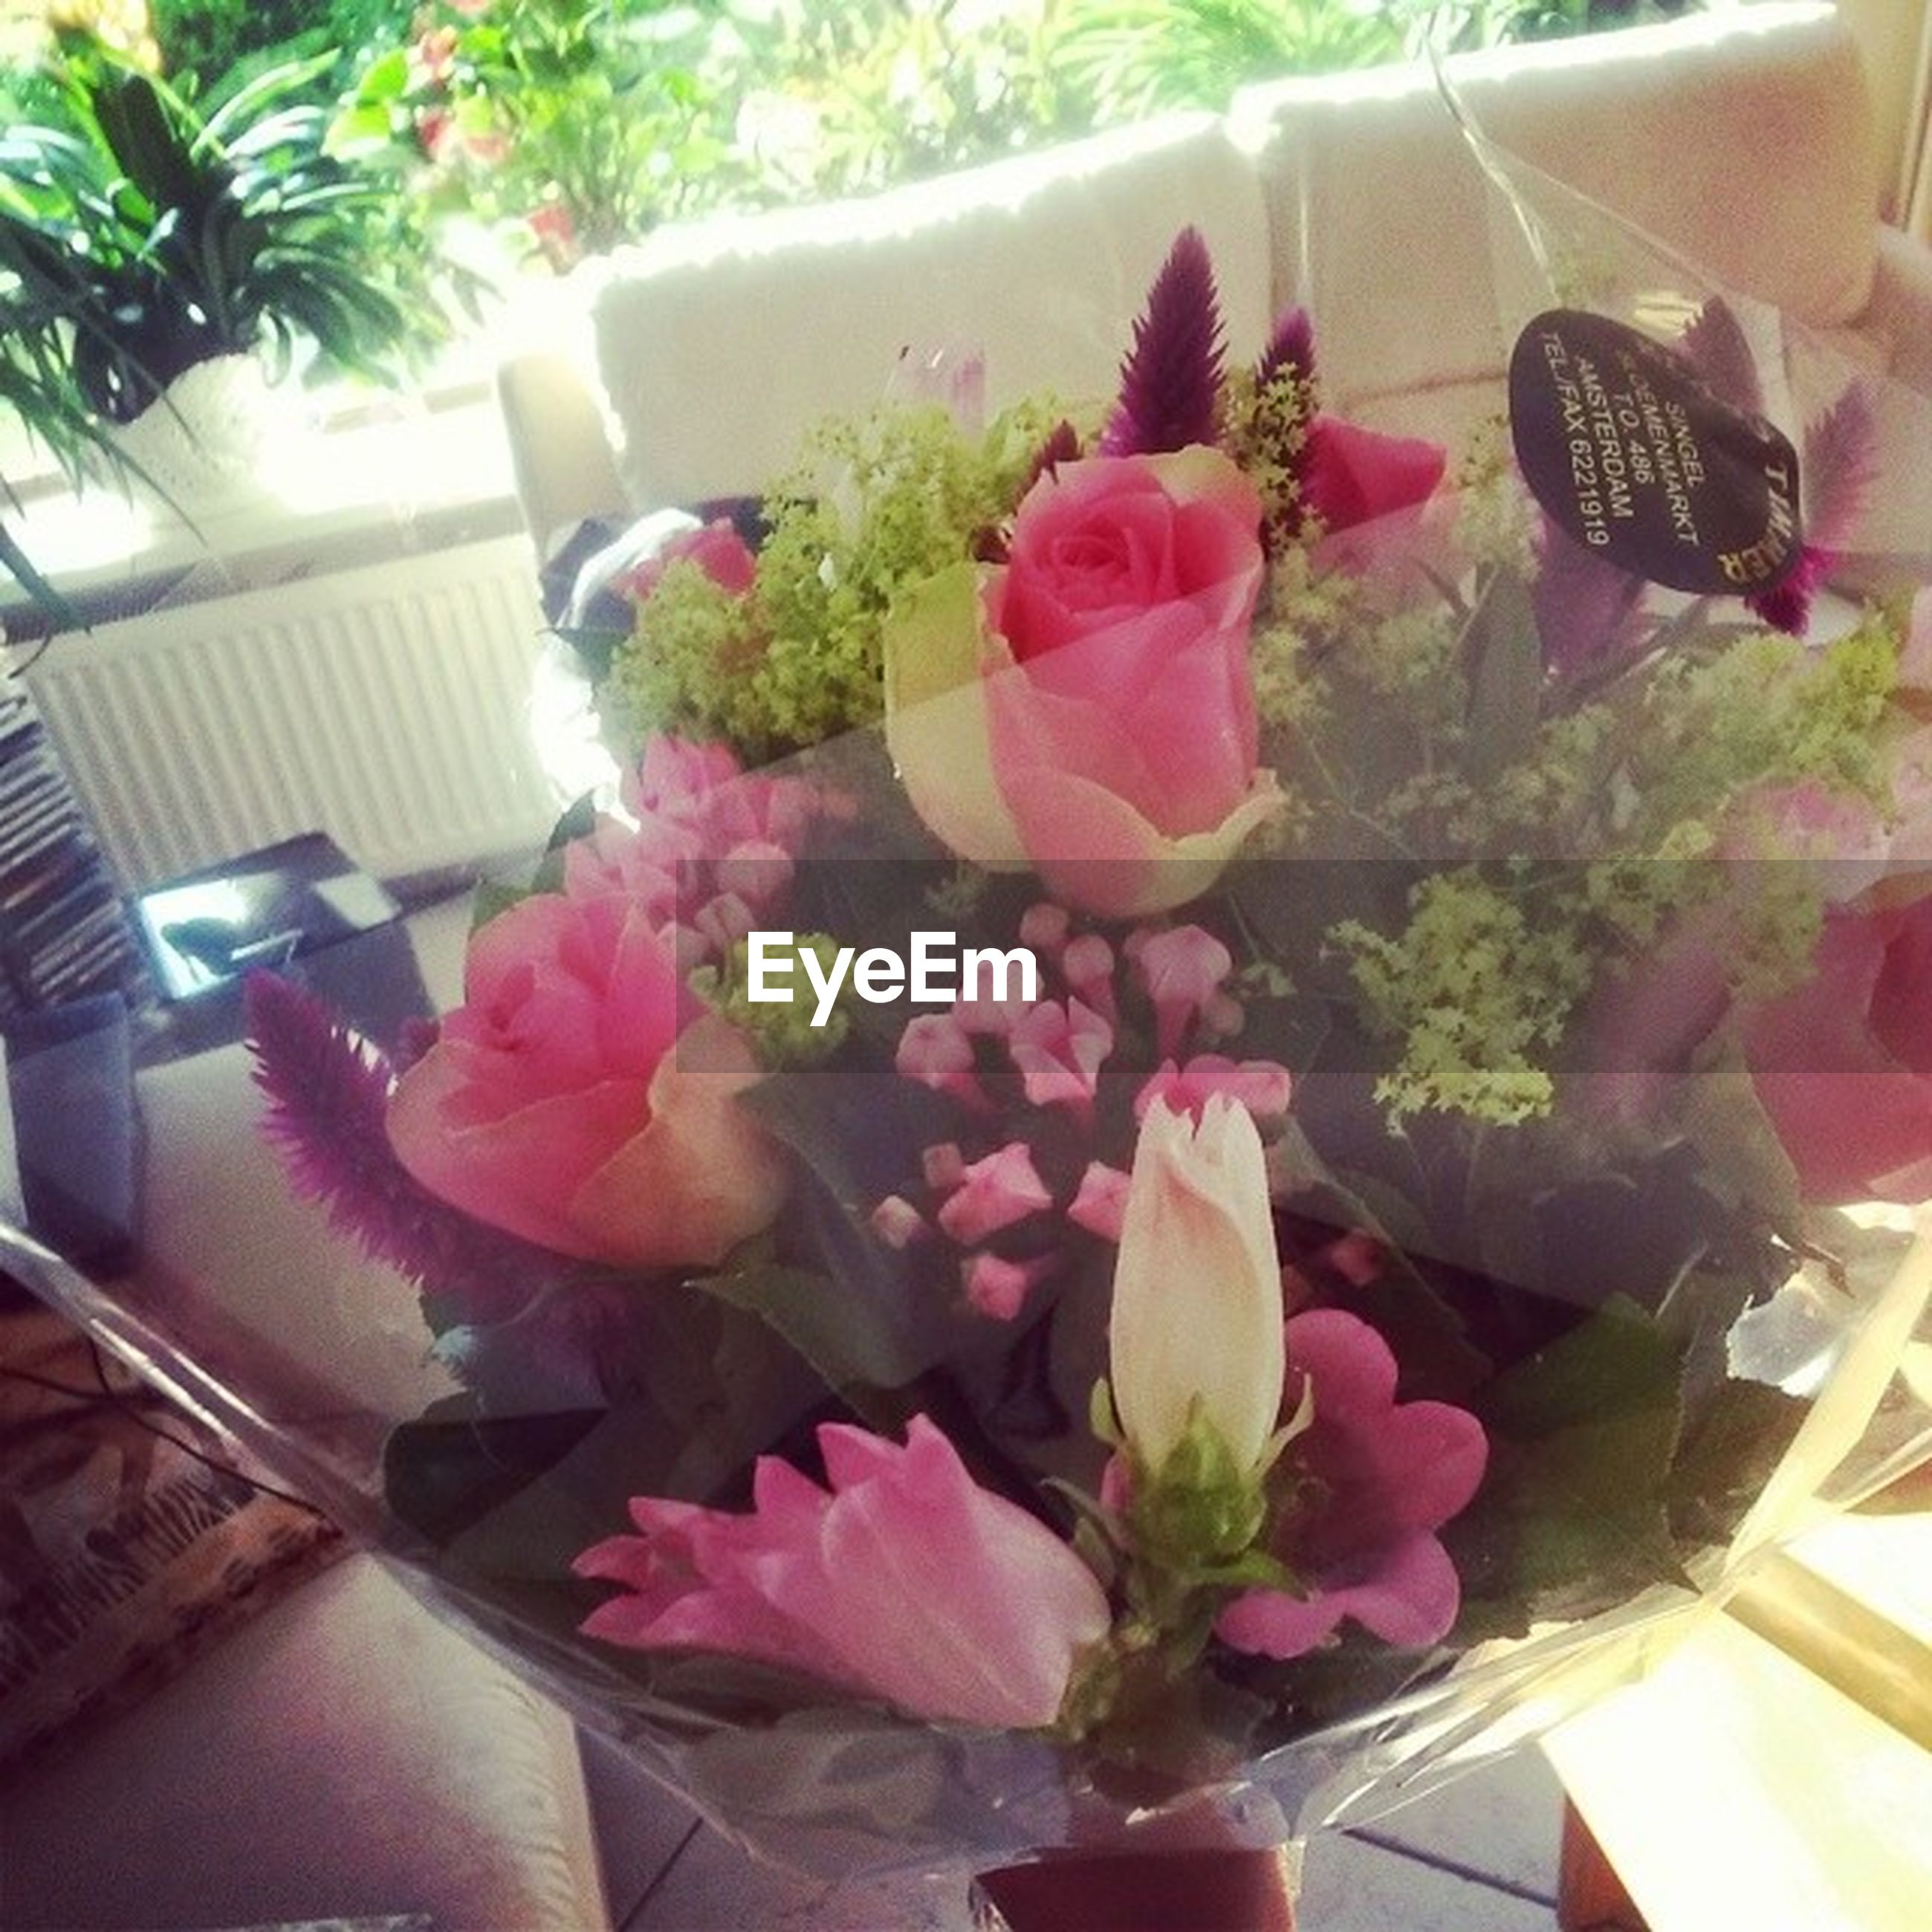 indoors, flower, freshness, potted plant, high angle view, plant, table, vase, bouquet, growth, home interior, decoration, window, pink color, no people, variation, flower pot, rose - flower, day, fragility